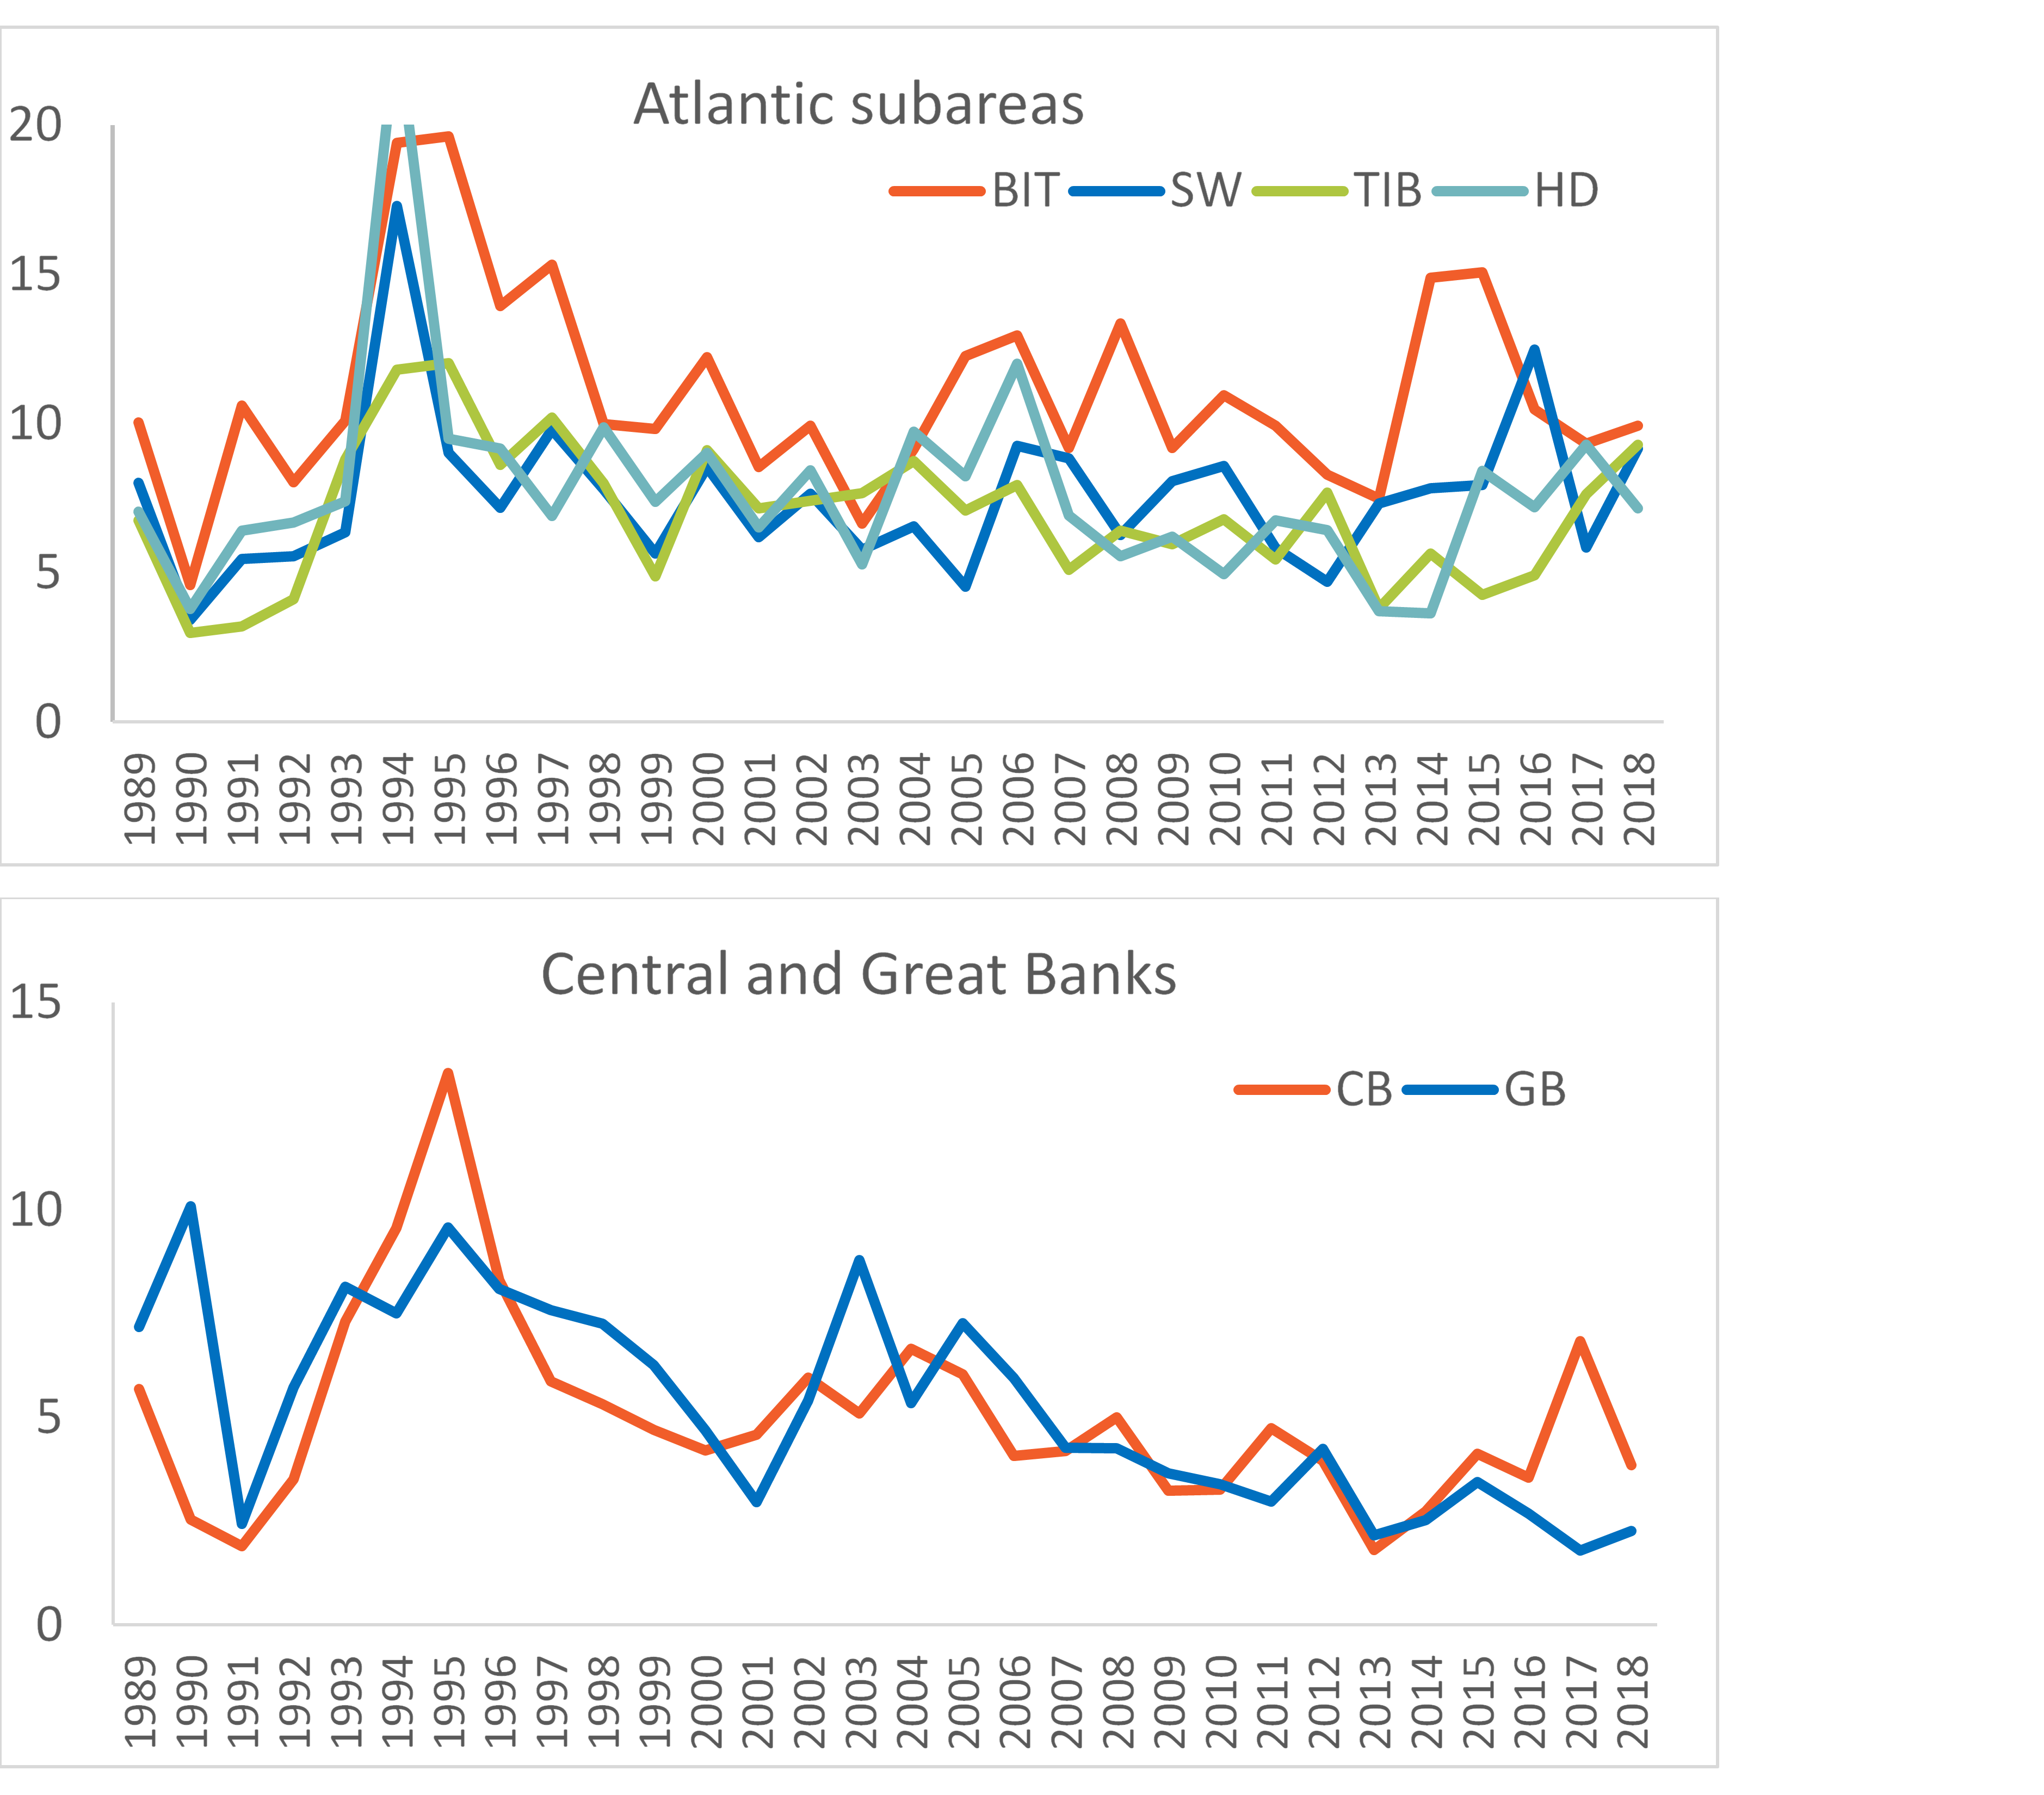 Figure 3.3.3. Time-series estimates of mean zooplankton biomass (g dw m-2 ) for stations within subareas of the Barents Sea (see WGIBAR 2018 Report, Annex 4) based on autumn survey data for the 1989-2018 period. Upper panel – four subareas in the southwestern Barents Sea covered mainly with Atlantic water: Bear Island Trench (BIT); South-West (SW); Hopen Deep (HD); and Thor Iversen Bank (TIB). Lower panel – two subareas in the central Barents Sea with colder and partly Arctic water conditions: Central Bank (CB) and Great Bank (GB). Results presented represent the total biomass collected with WP2.